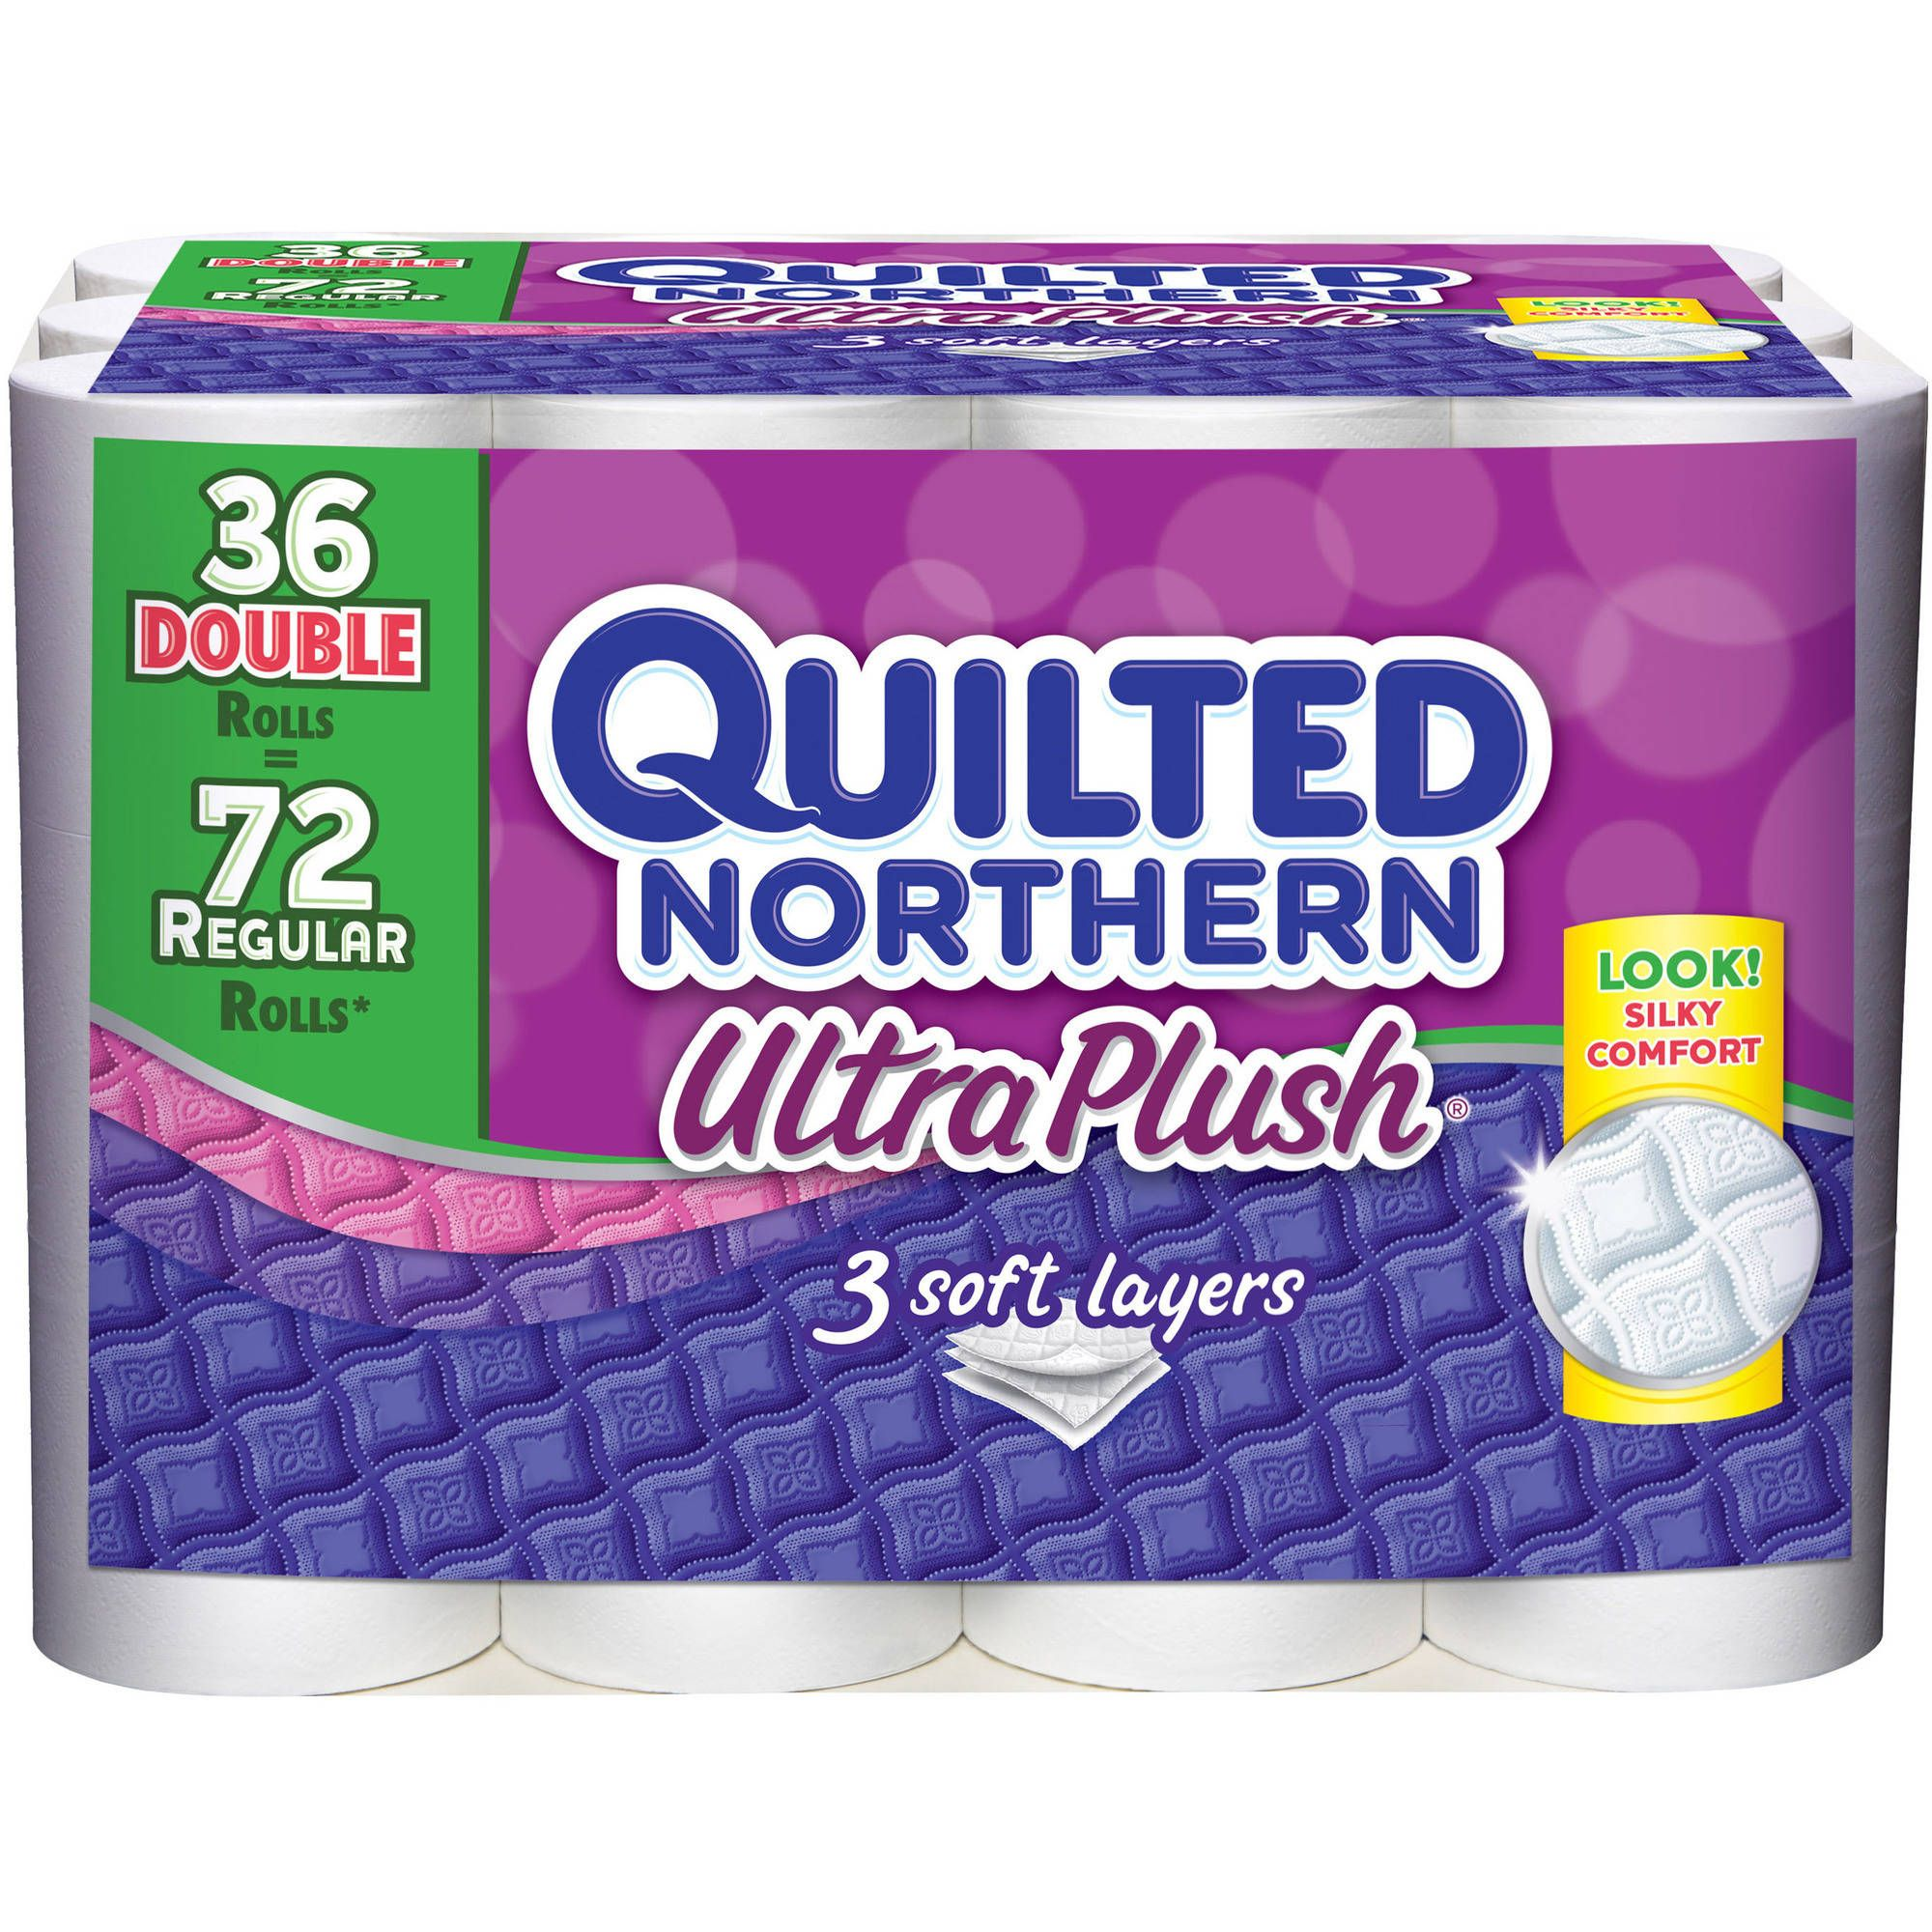 toilet northern paper you quilt can quilted insider best business buy the